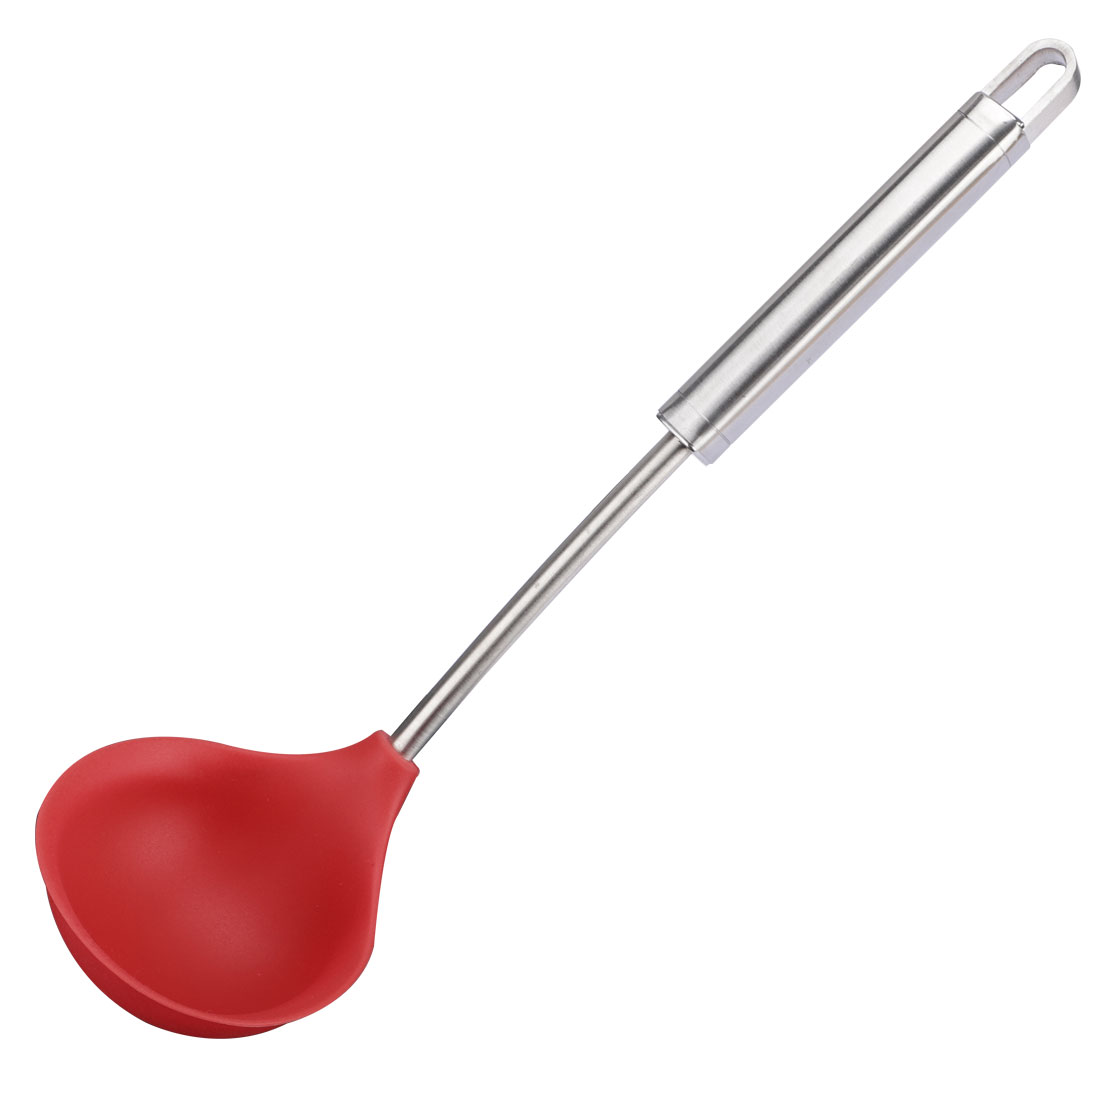 Silicone Soup Spoon Ladle Kitchen Serving Utensil for Cooking Baking Gruel Red